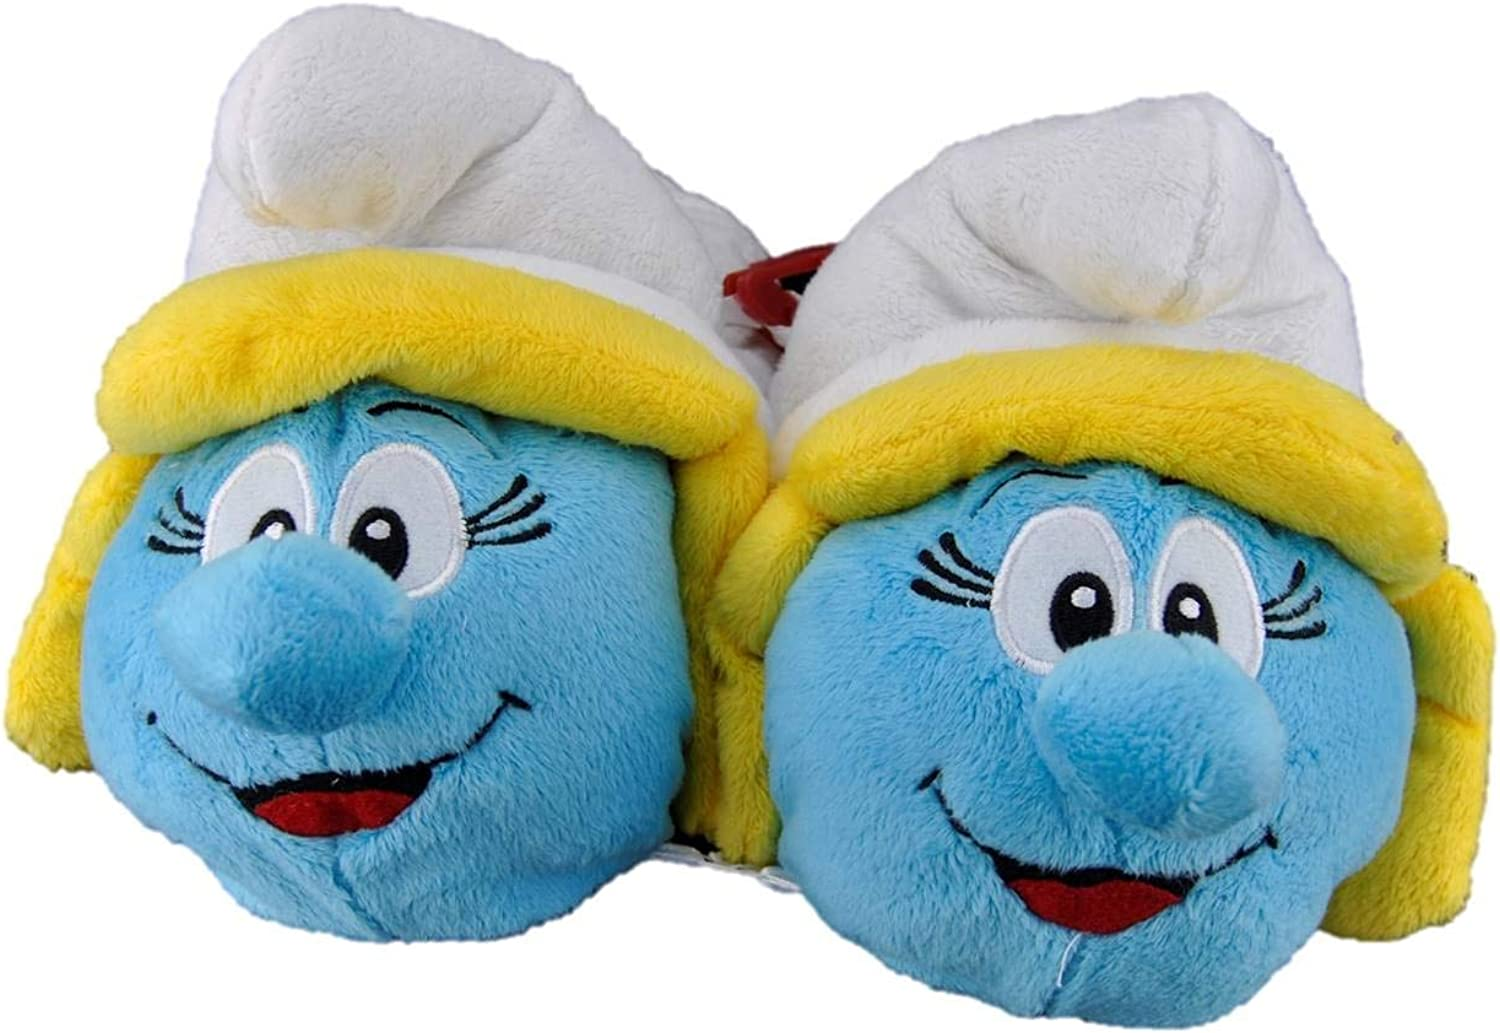 DE FONSECA Smurfette Plush Slippers moppine Slippers First Steps Infant